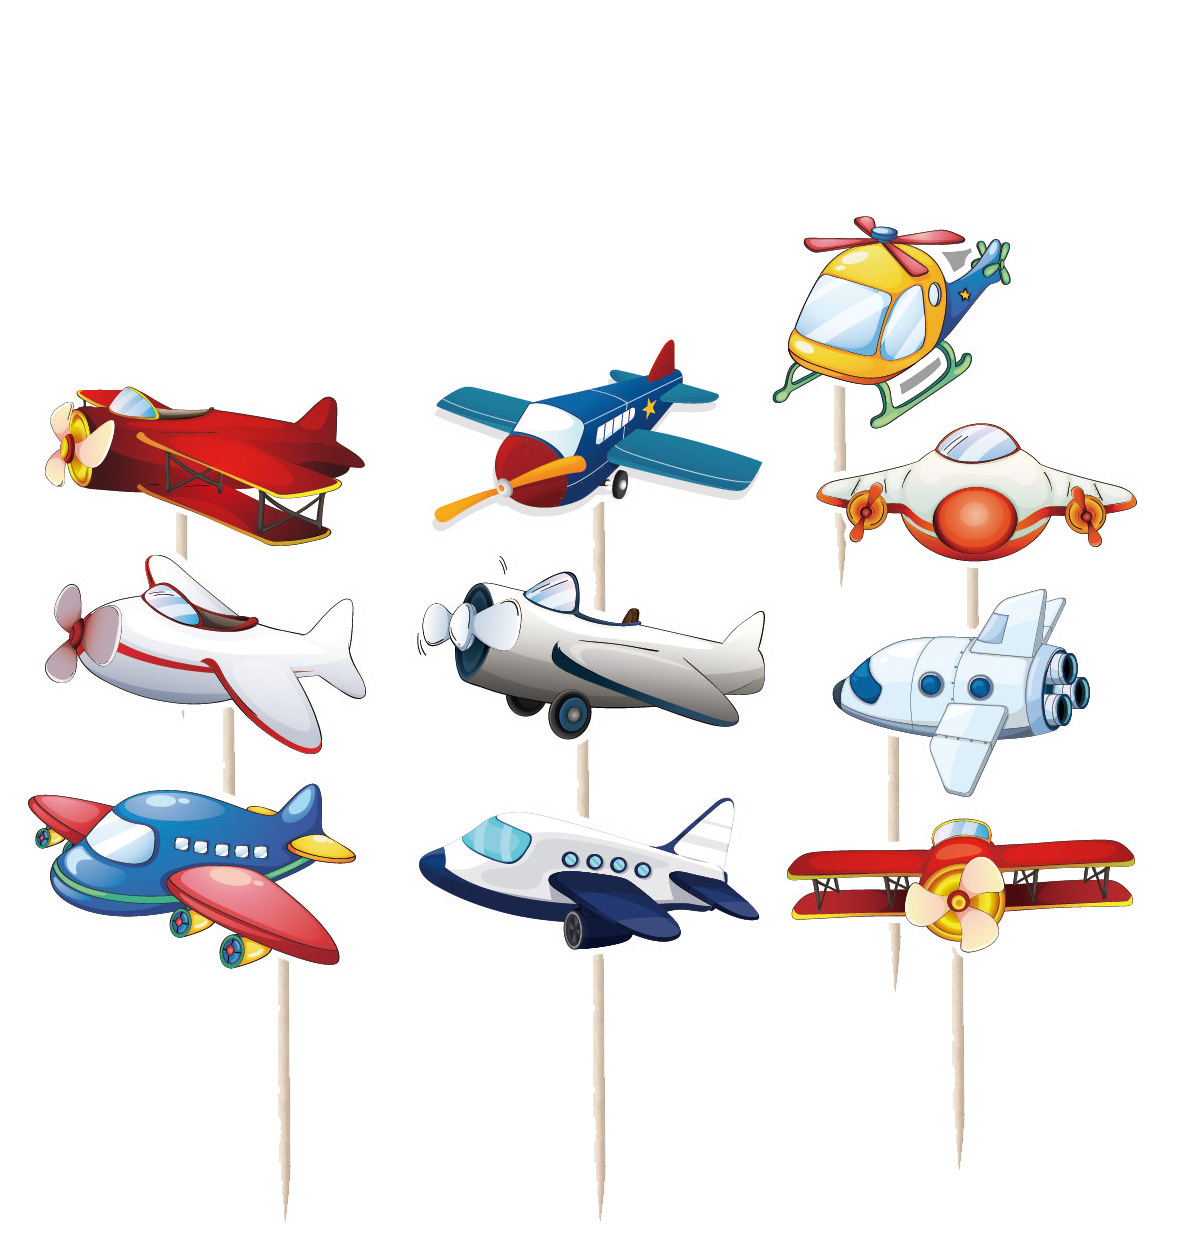 10pcs Cartoon Airplane Cupcake Toppers Decorations for Kids Aircraft Themed Birthday Party Cake Decoration Supplies image